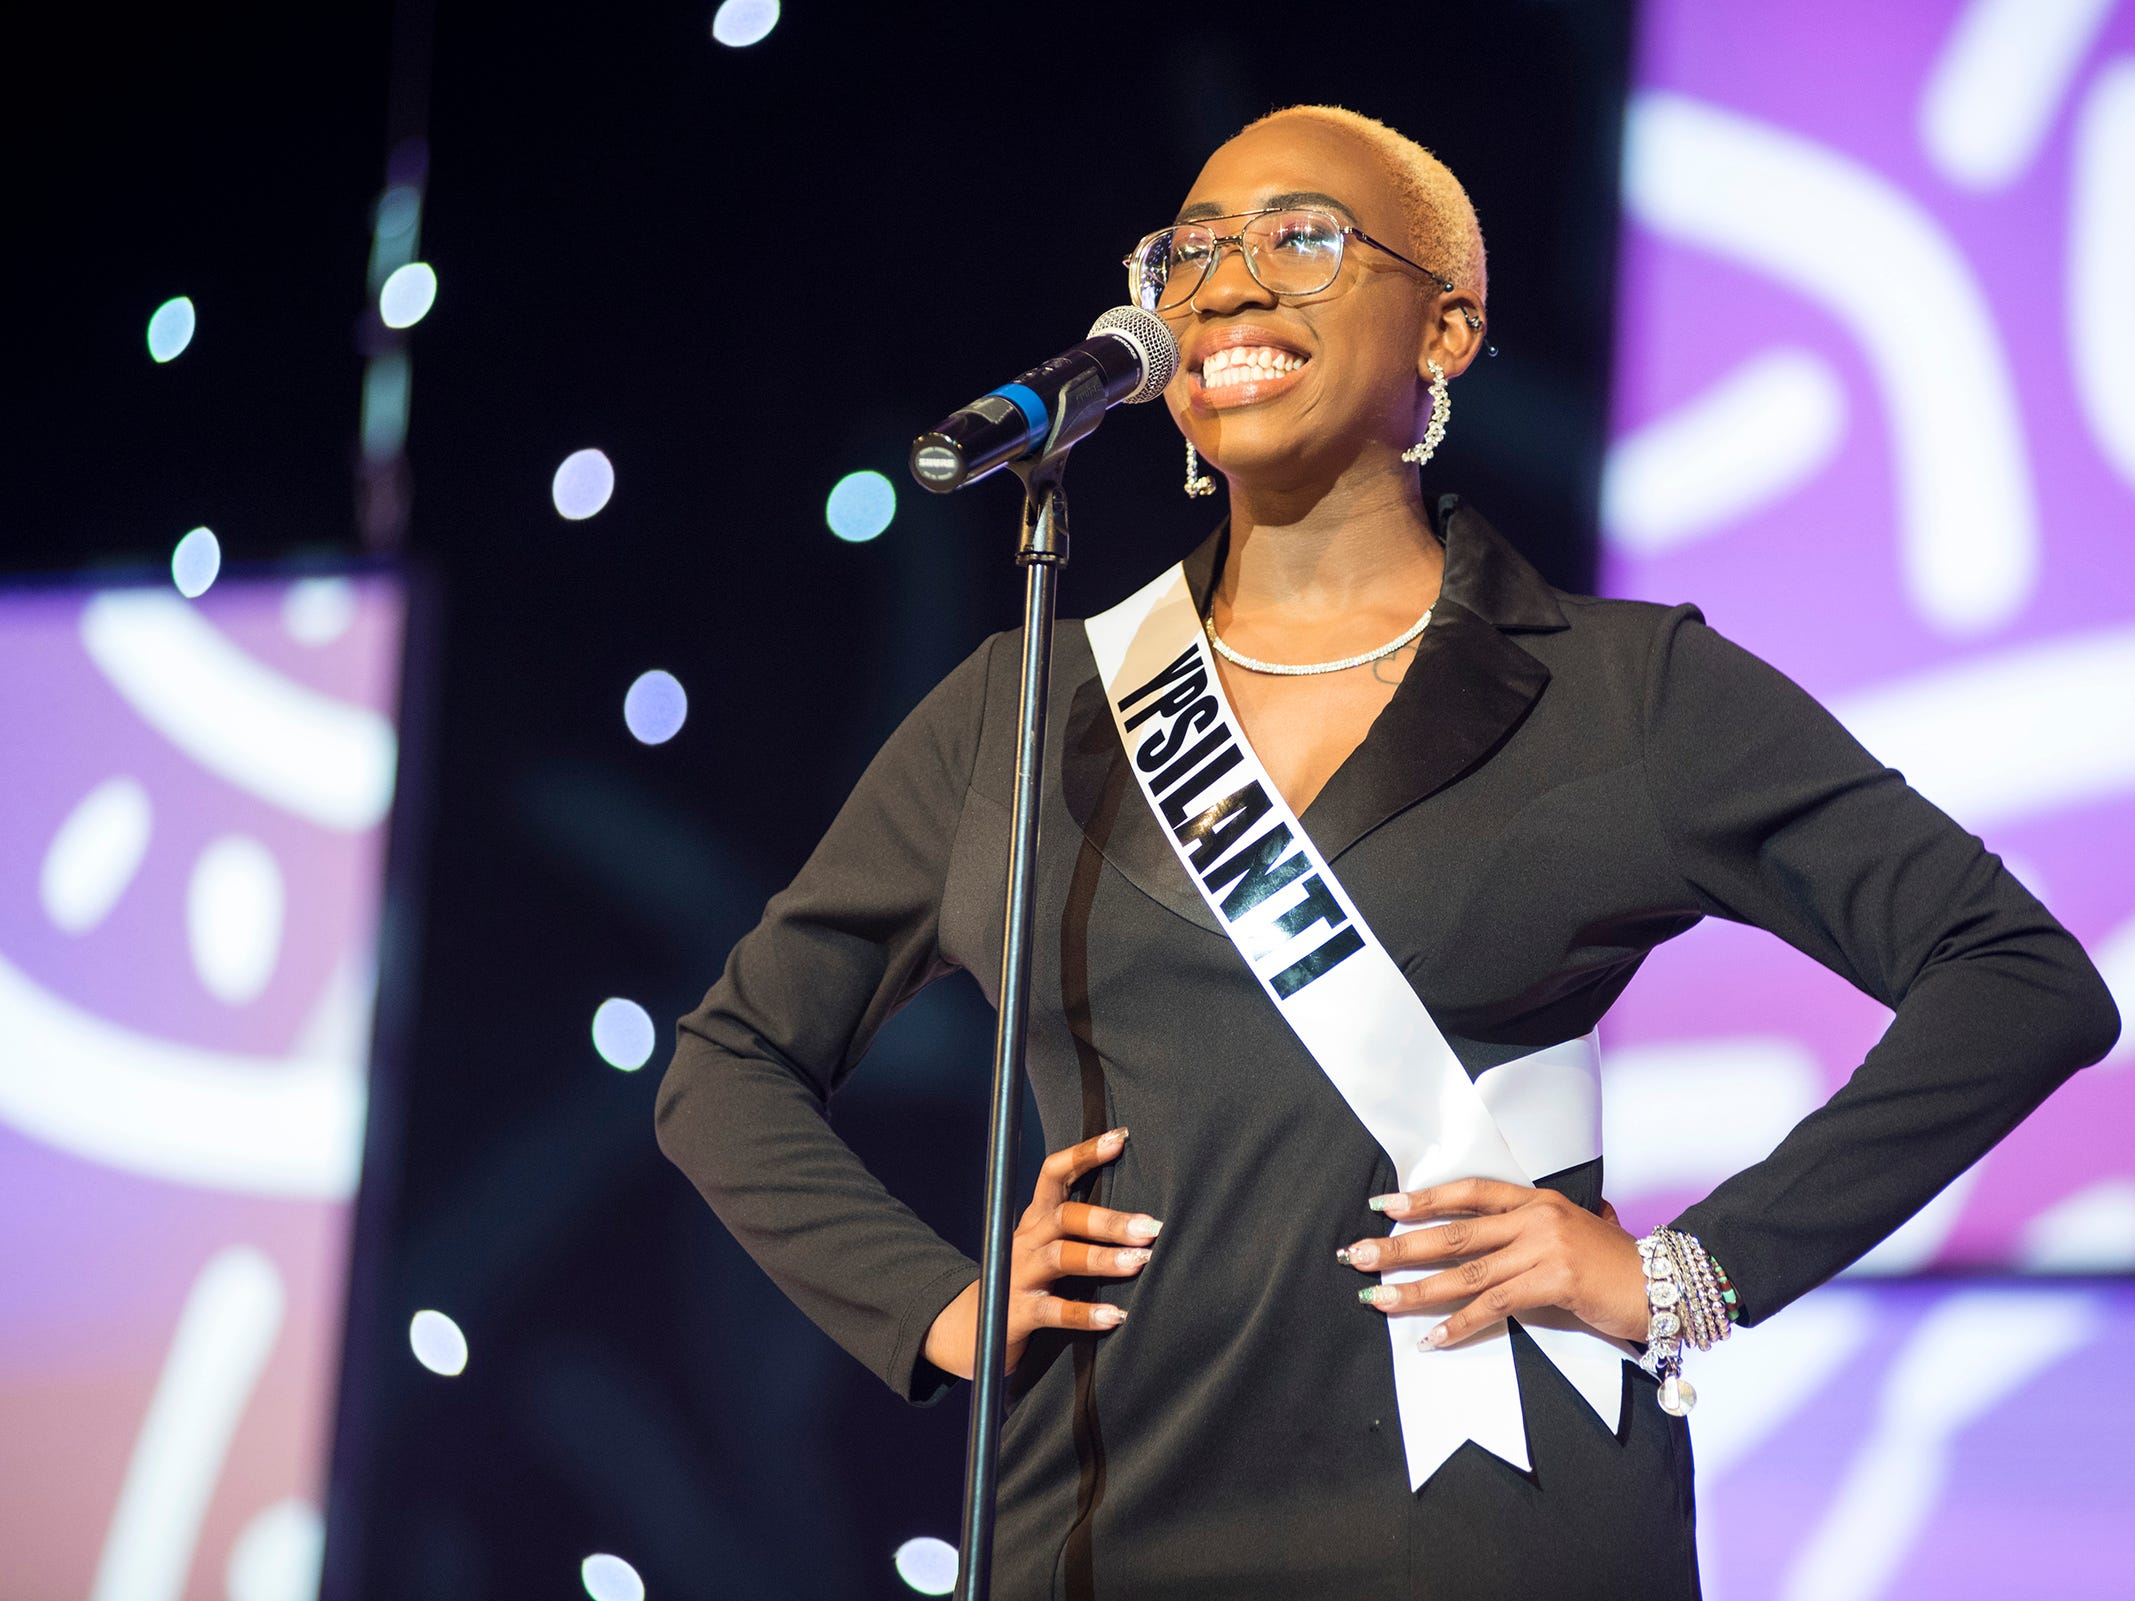 Miss Ypsilanti Khadija Williams introduces herself Saturday, Sept. 22, 2018 at the start of the Miss Michigan USA competition at McMorran Theater.